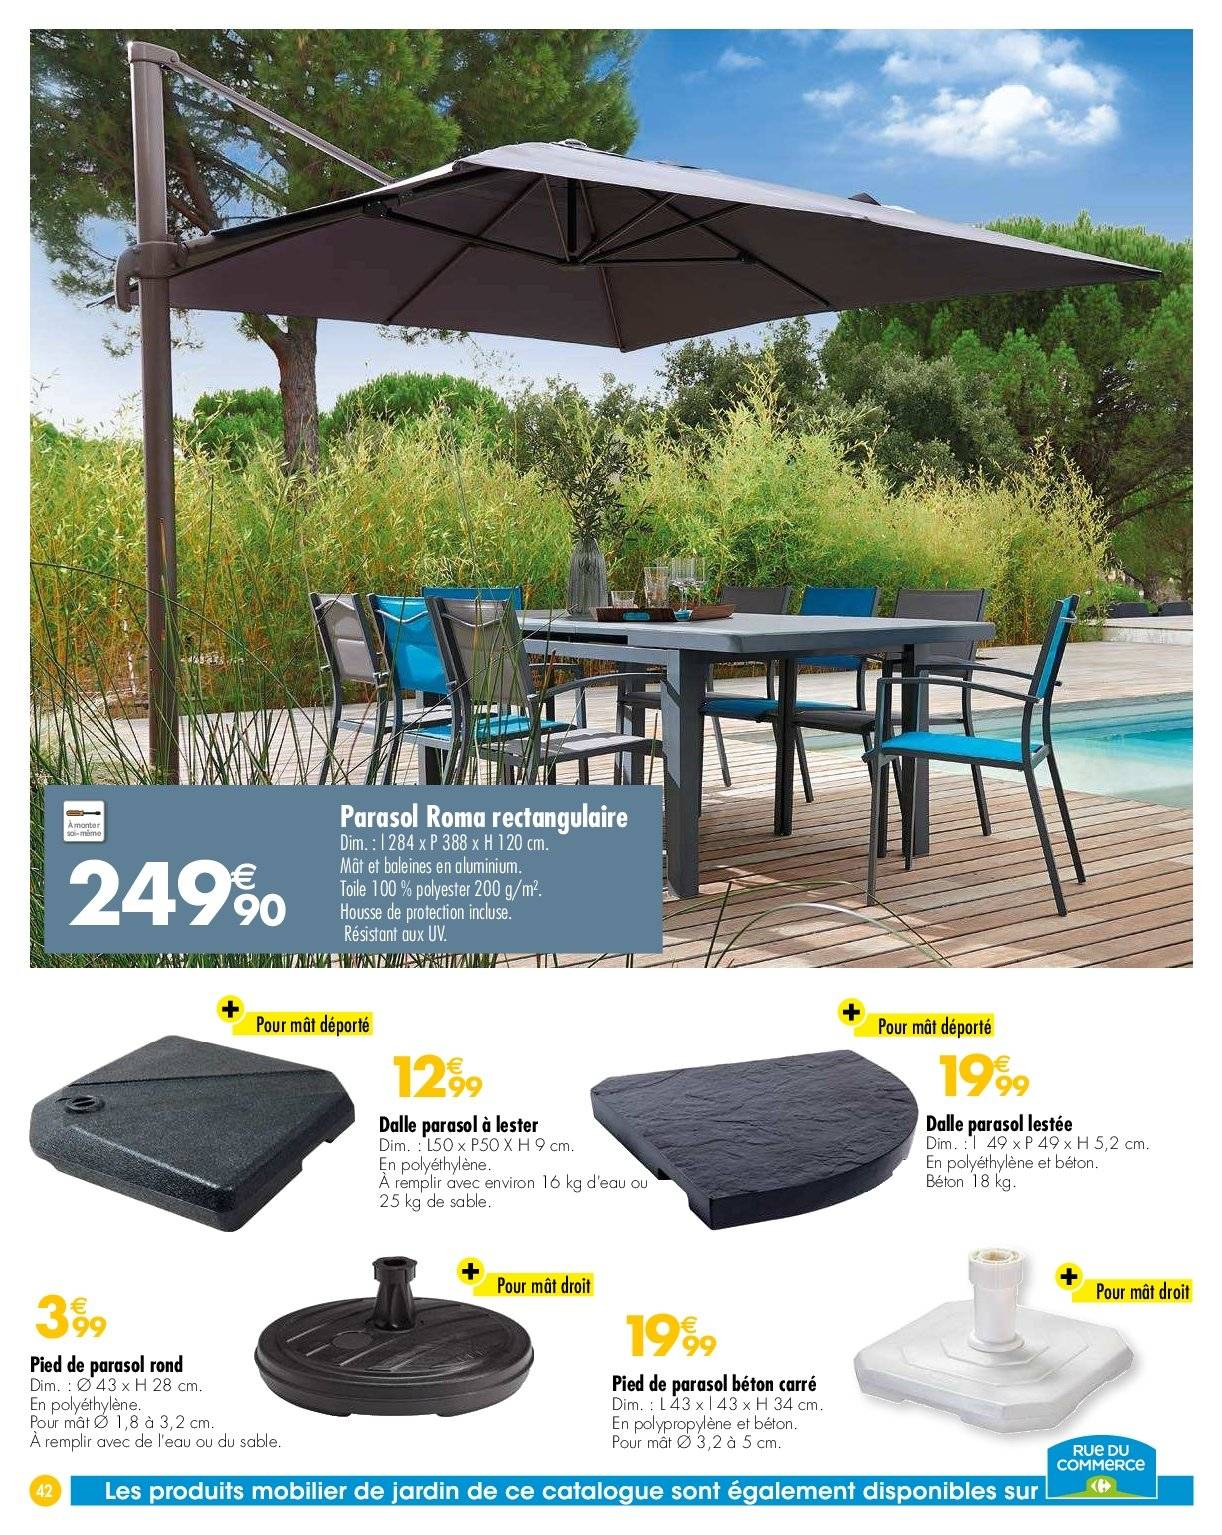 Meuble De Jardin Carrefour Best Of Dalle Bois Terrasse Carrefour Of 35 Best Of Meuble De Jardin Carrefour